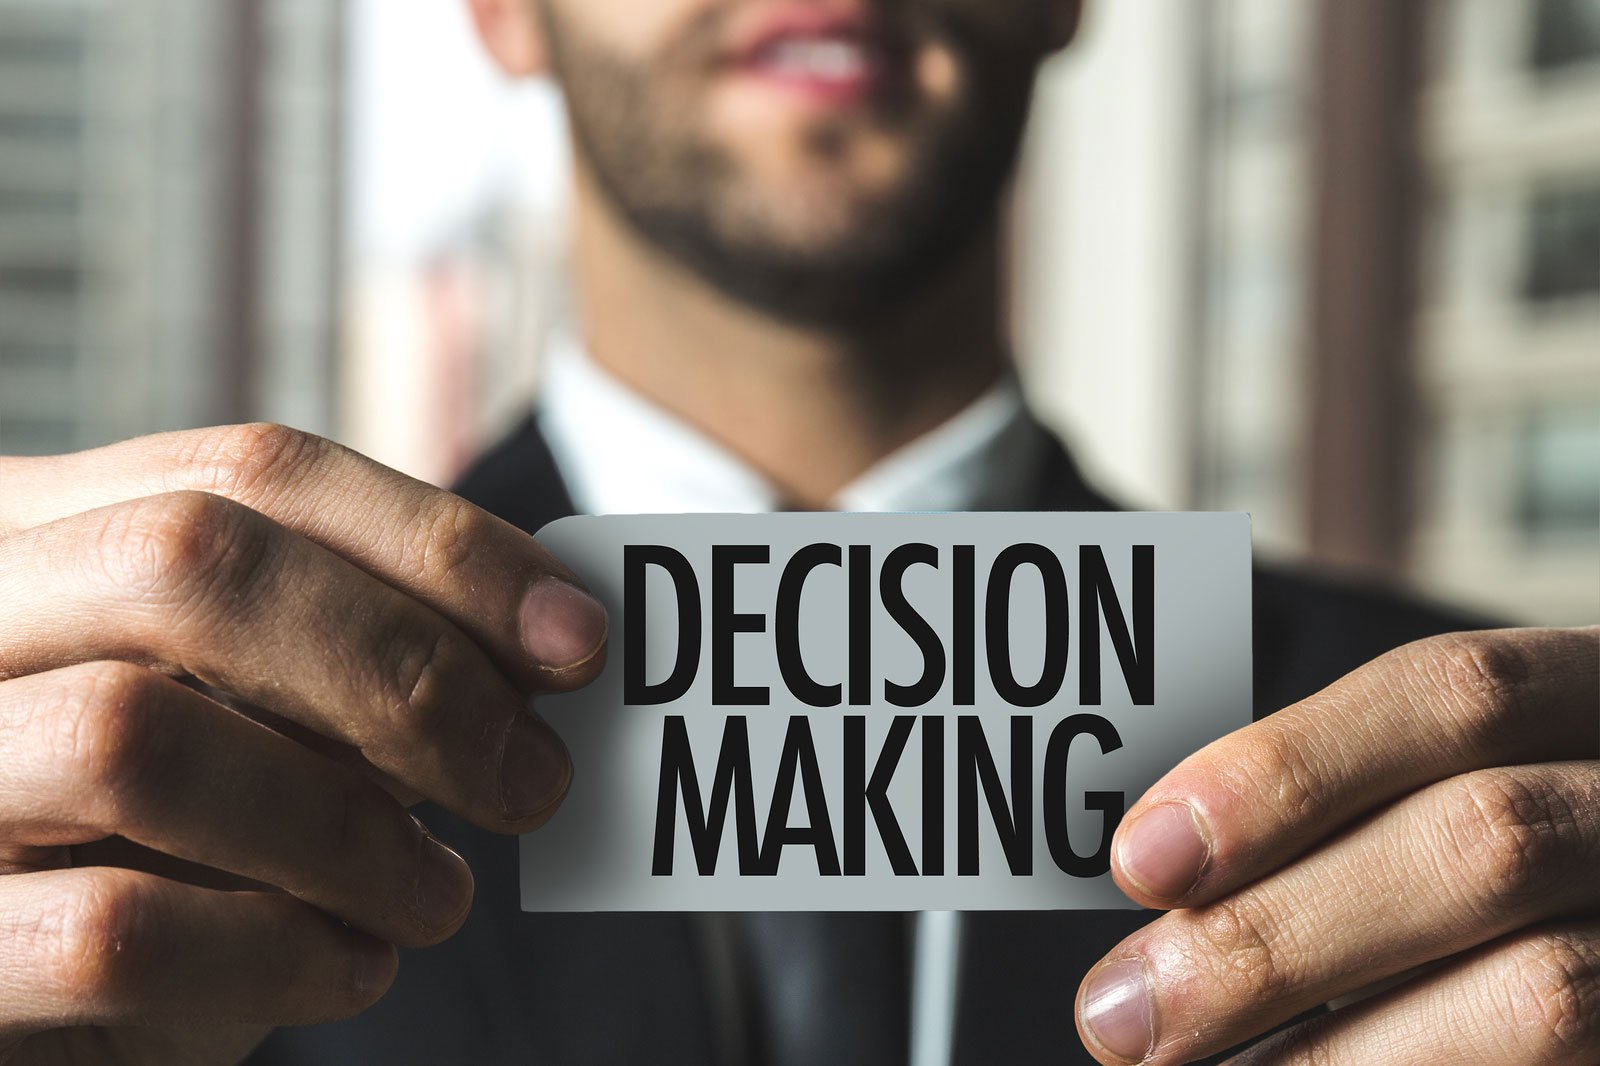 Businessman holing decision making card